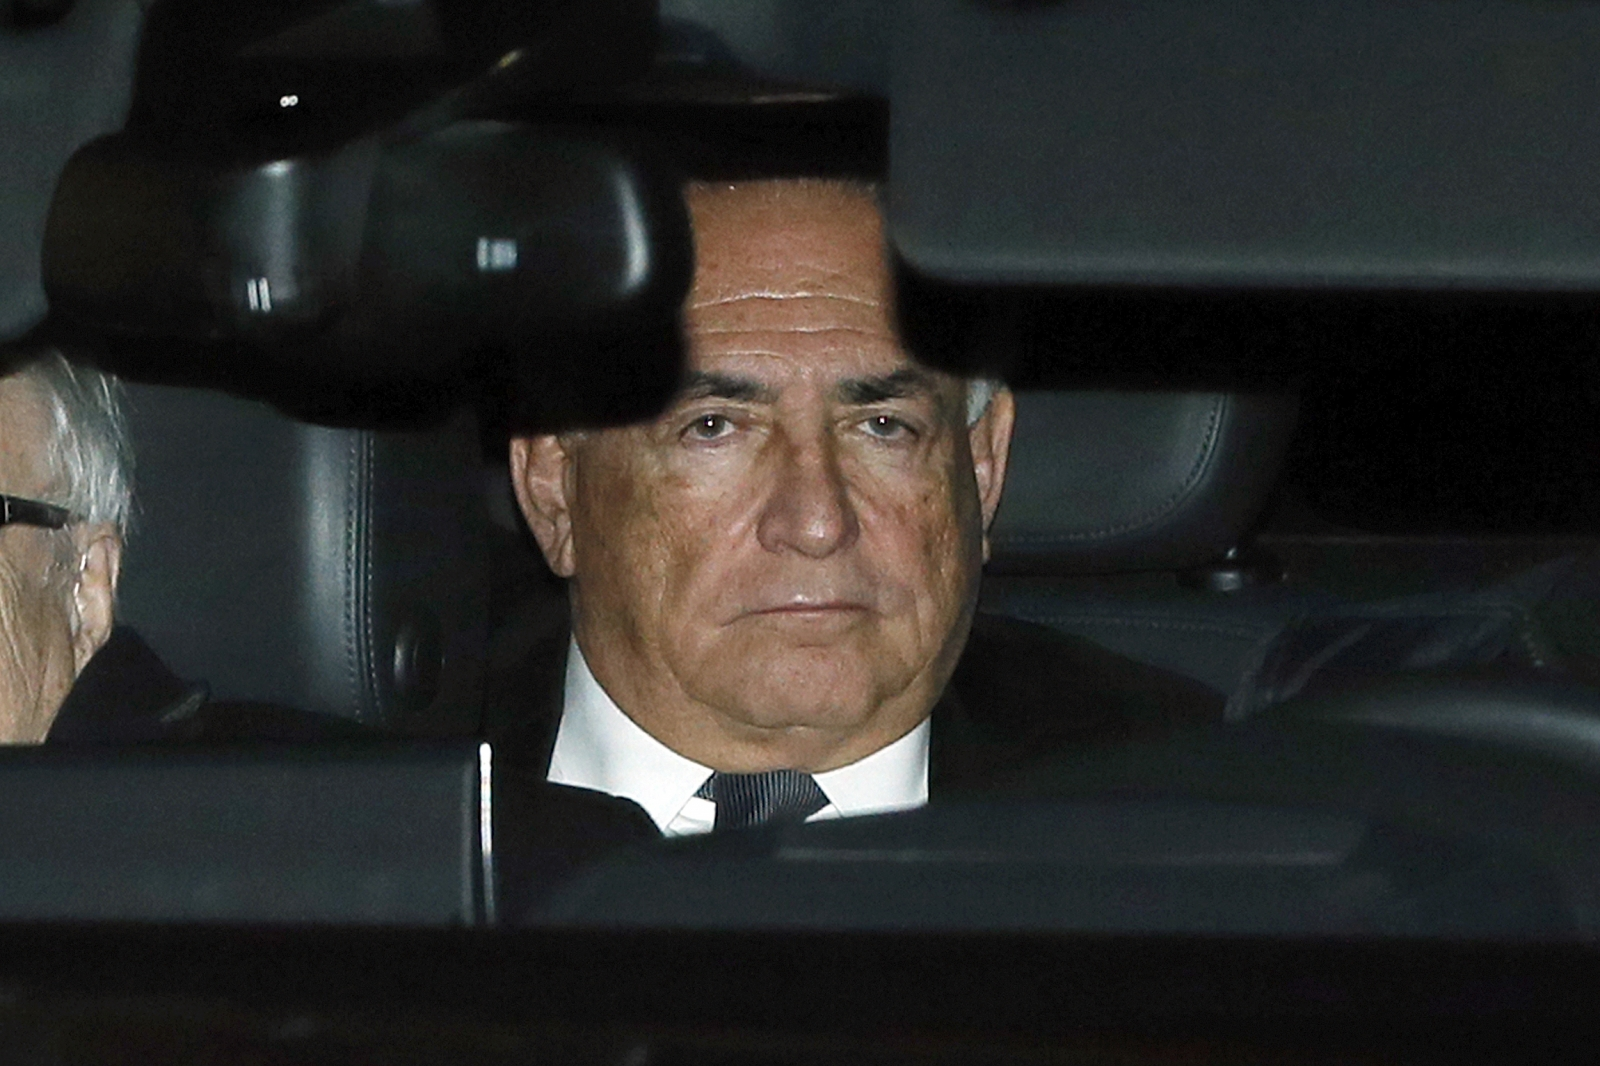 Former IMF head Dominique Strauss-Kahn rides in the backseat of a car as he leaves after the first day of trial in the so-called Carlton Affair, in Lille